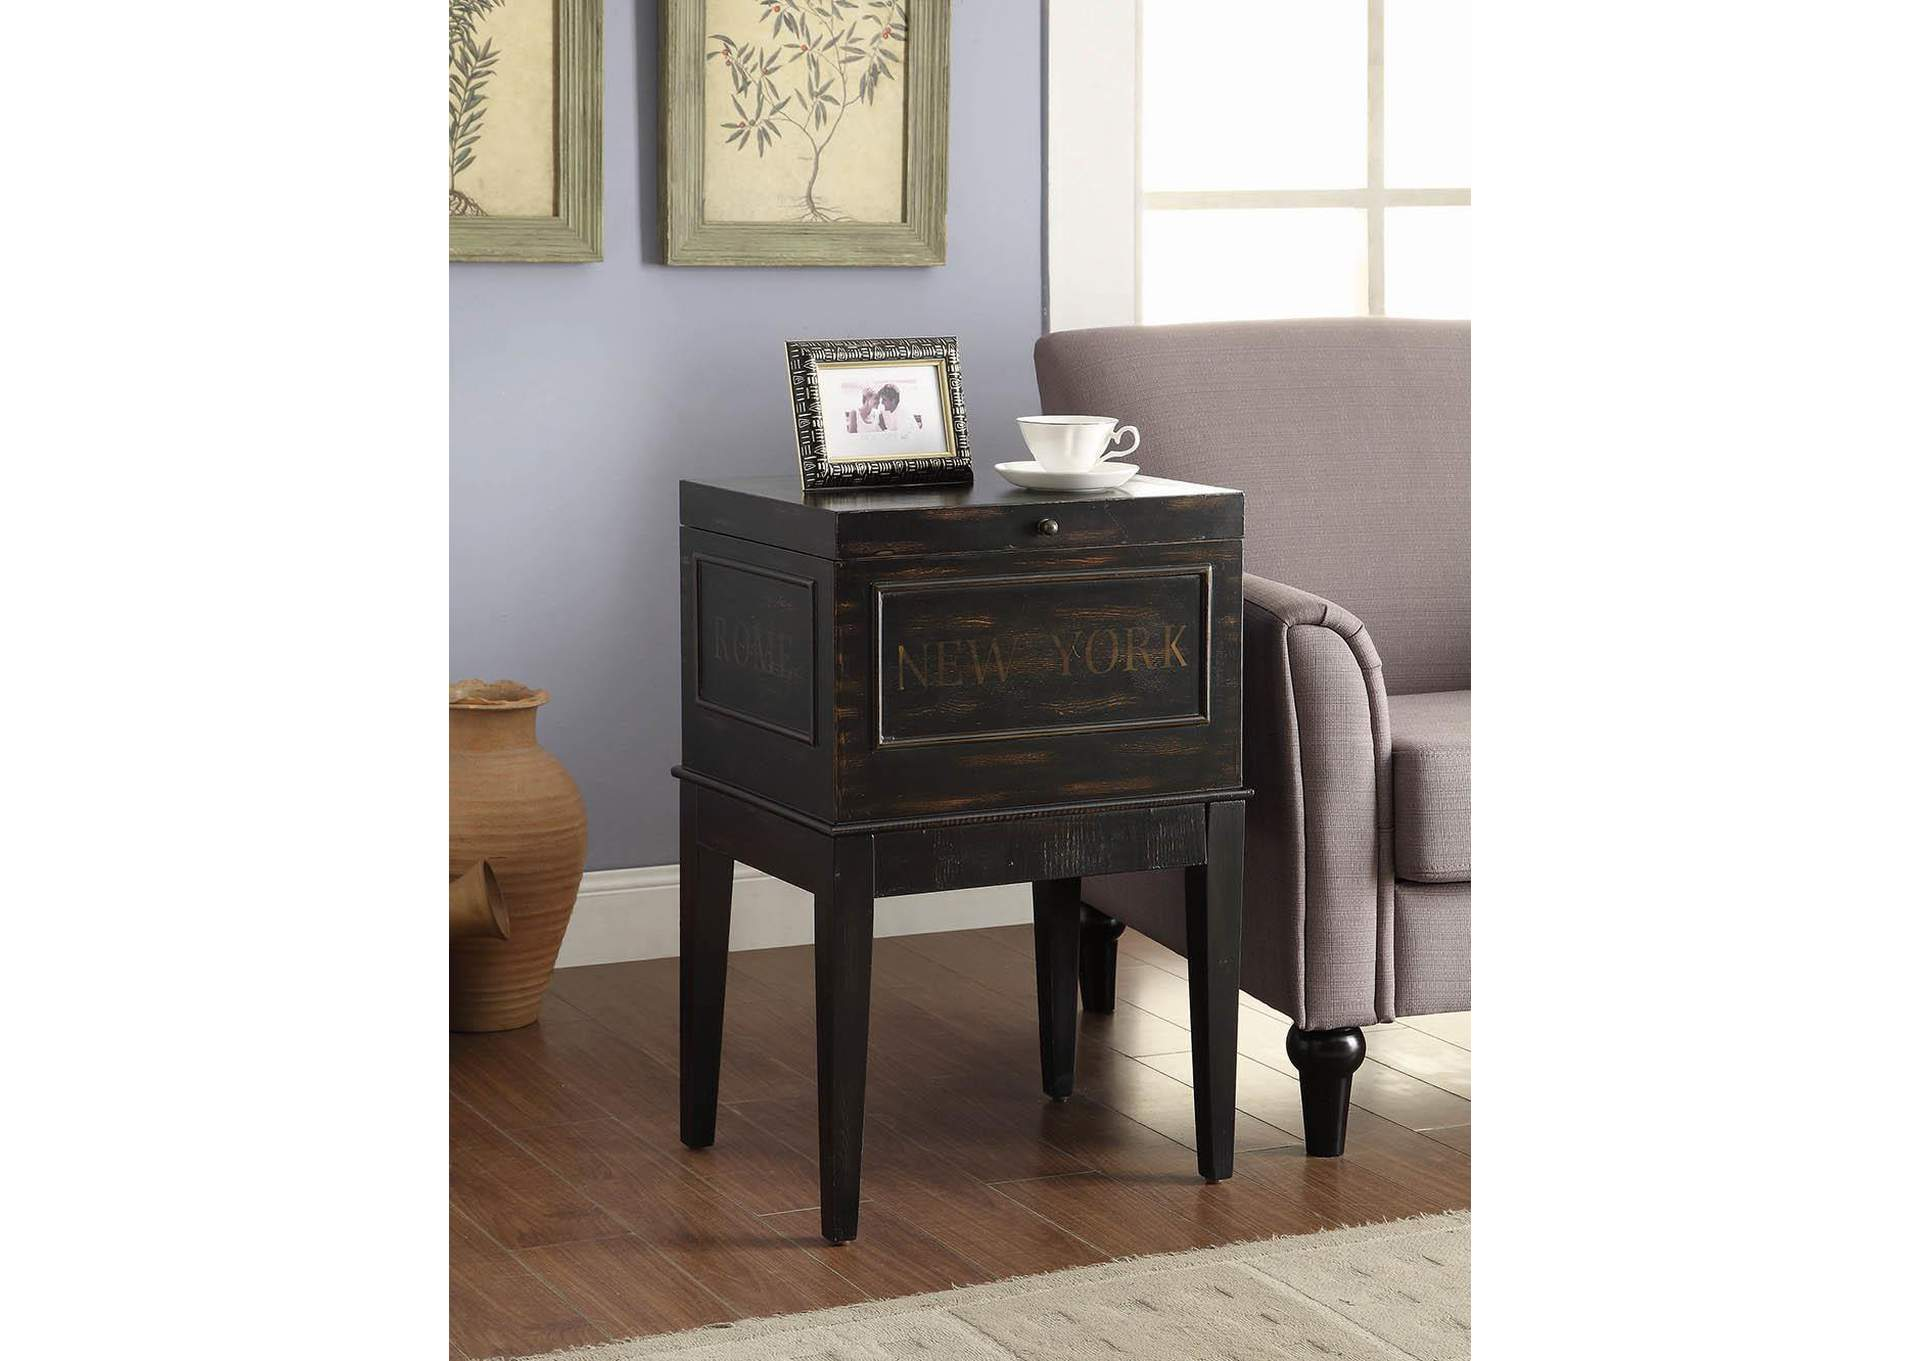 Furniture Palace Bronze Accent Cabinet